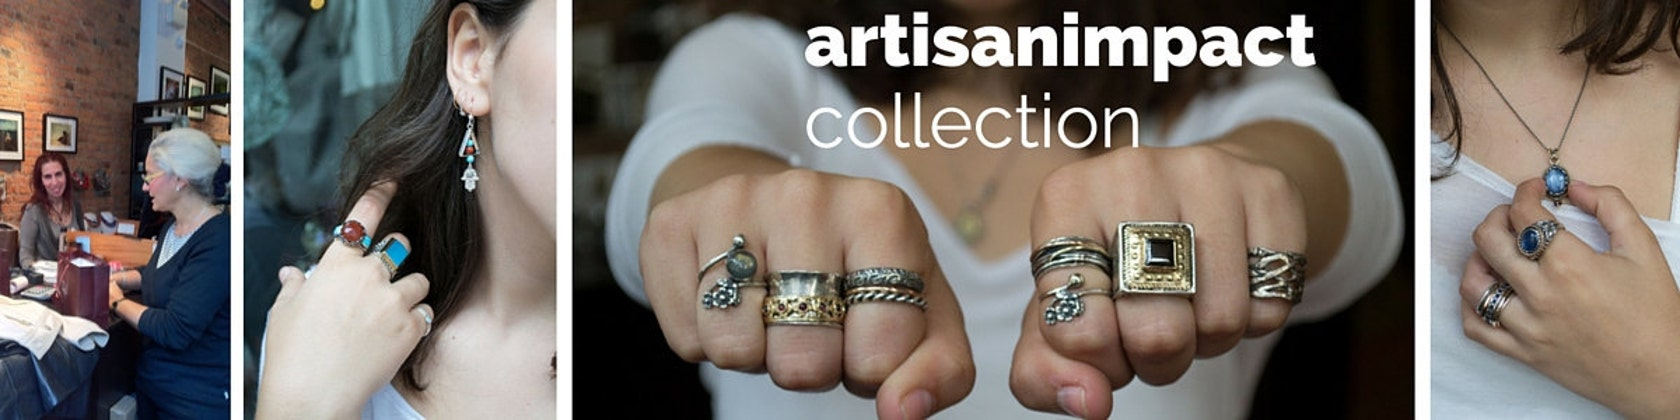 Artisanimpact Statement Silver And Gold Jewelry By Artisanimpact